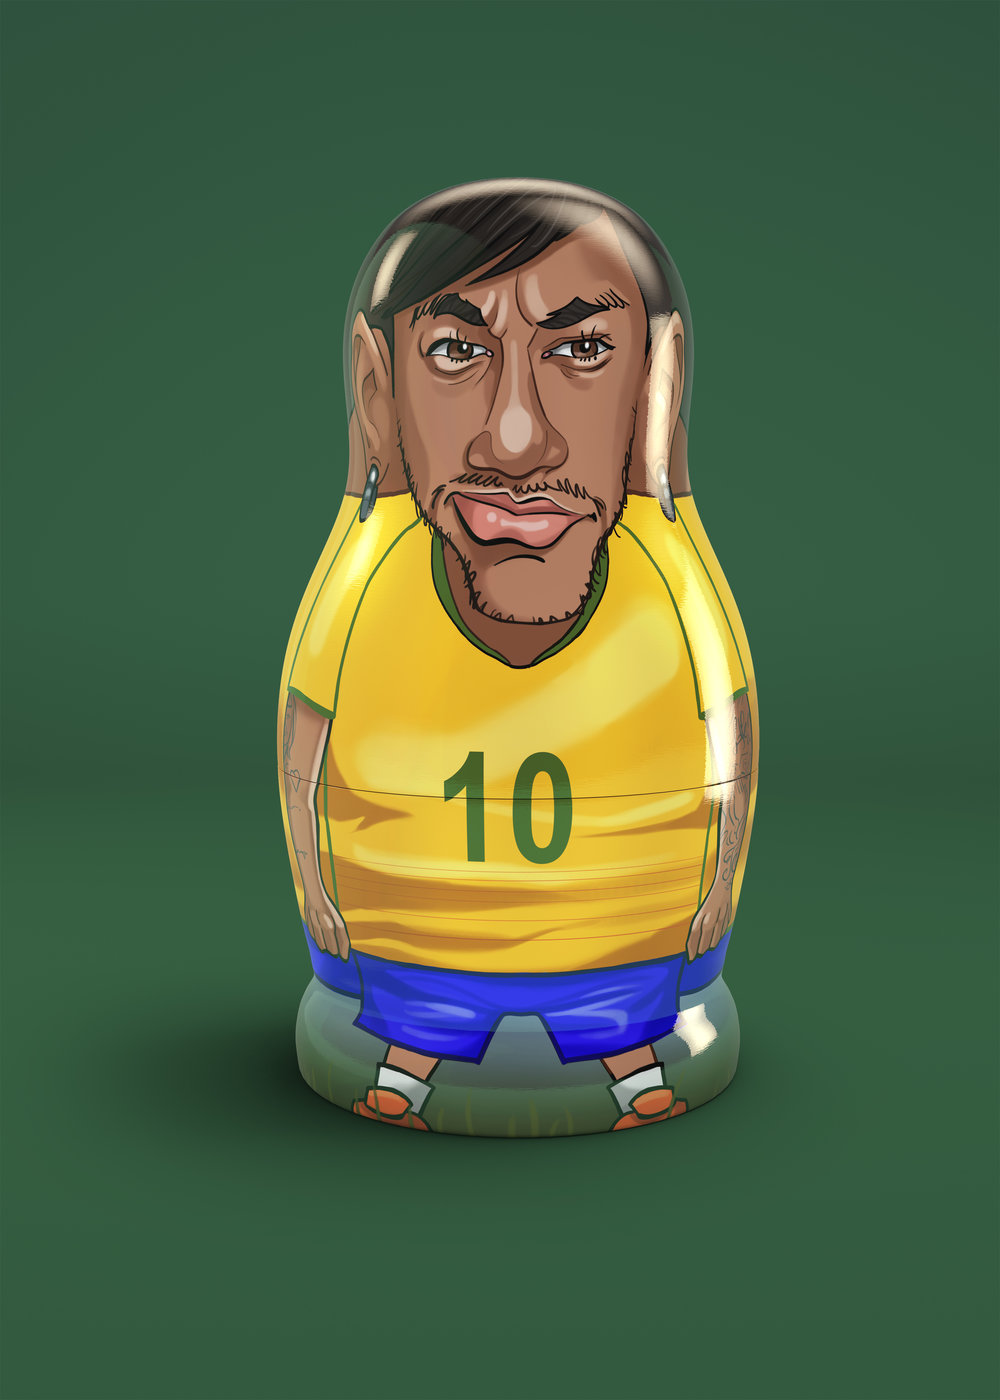 Neymar+Layers+to+client.jpg